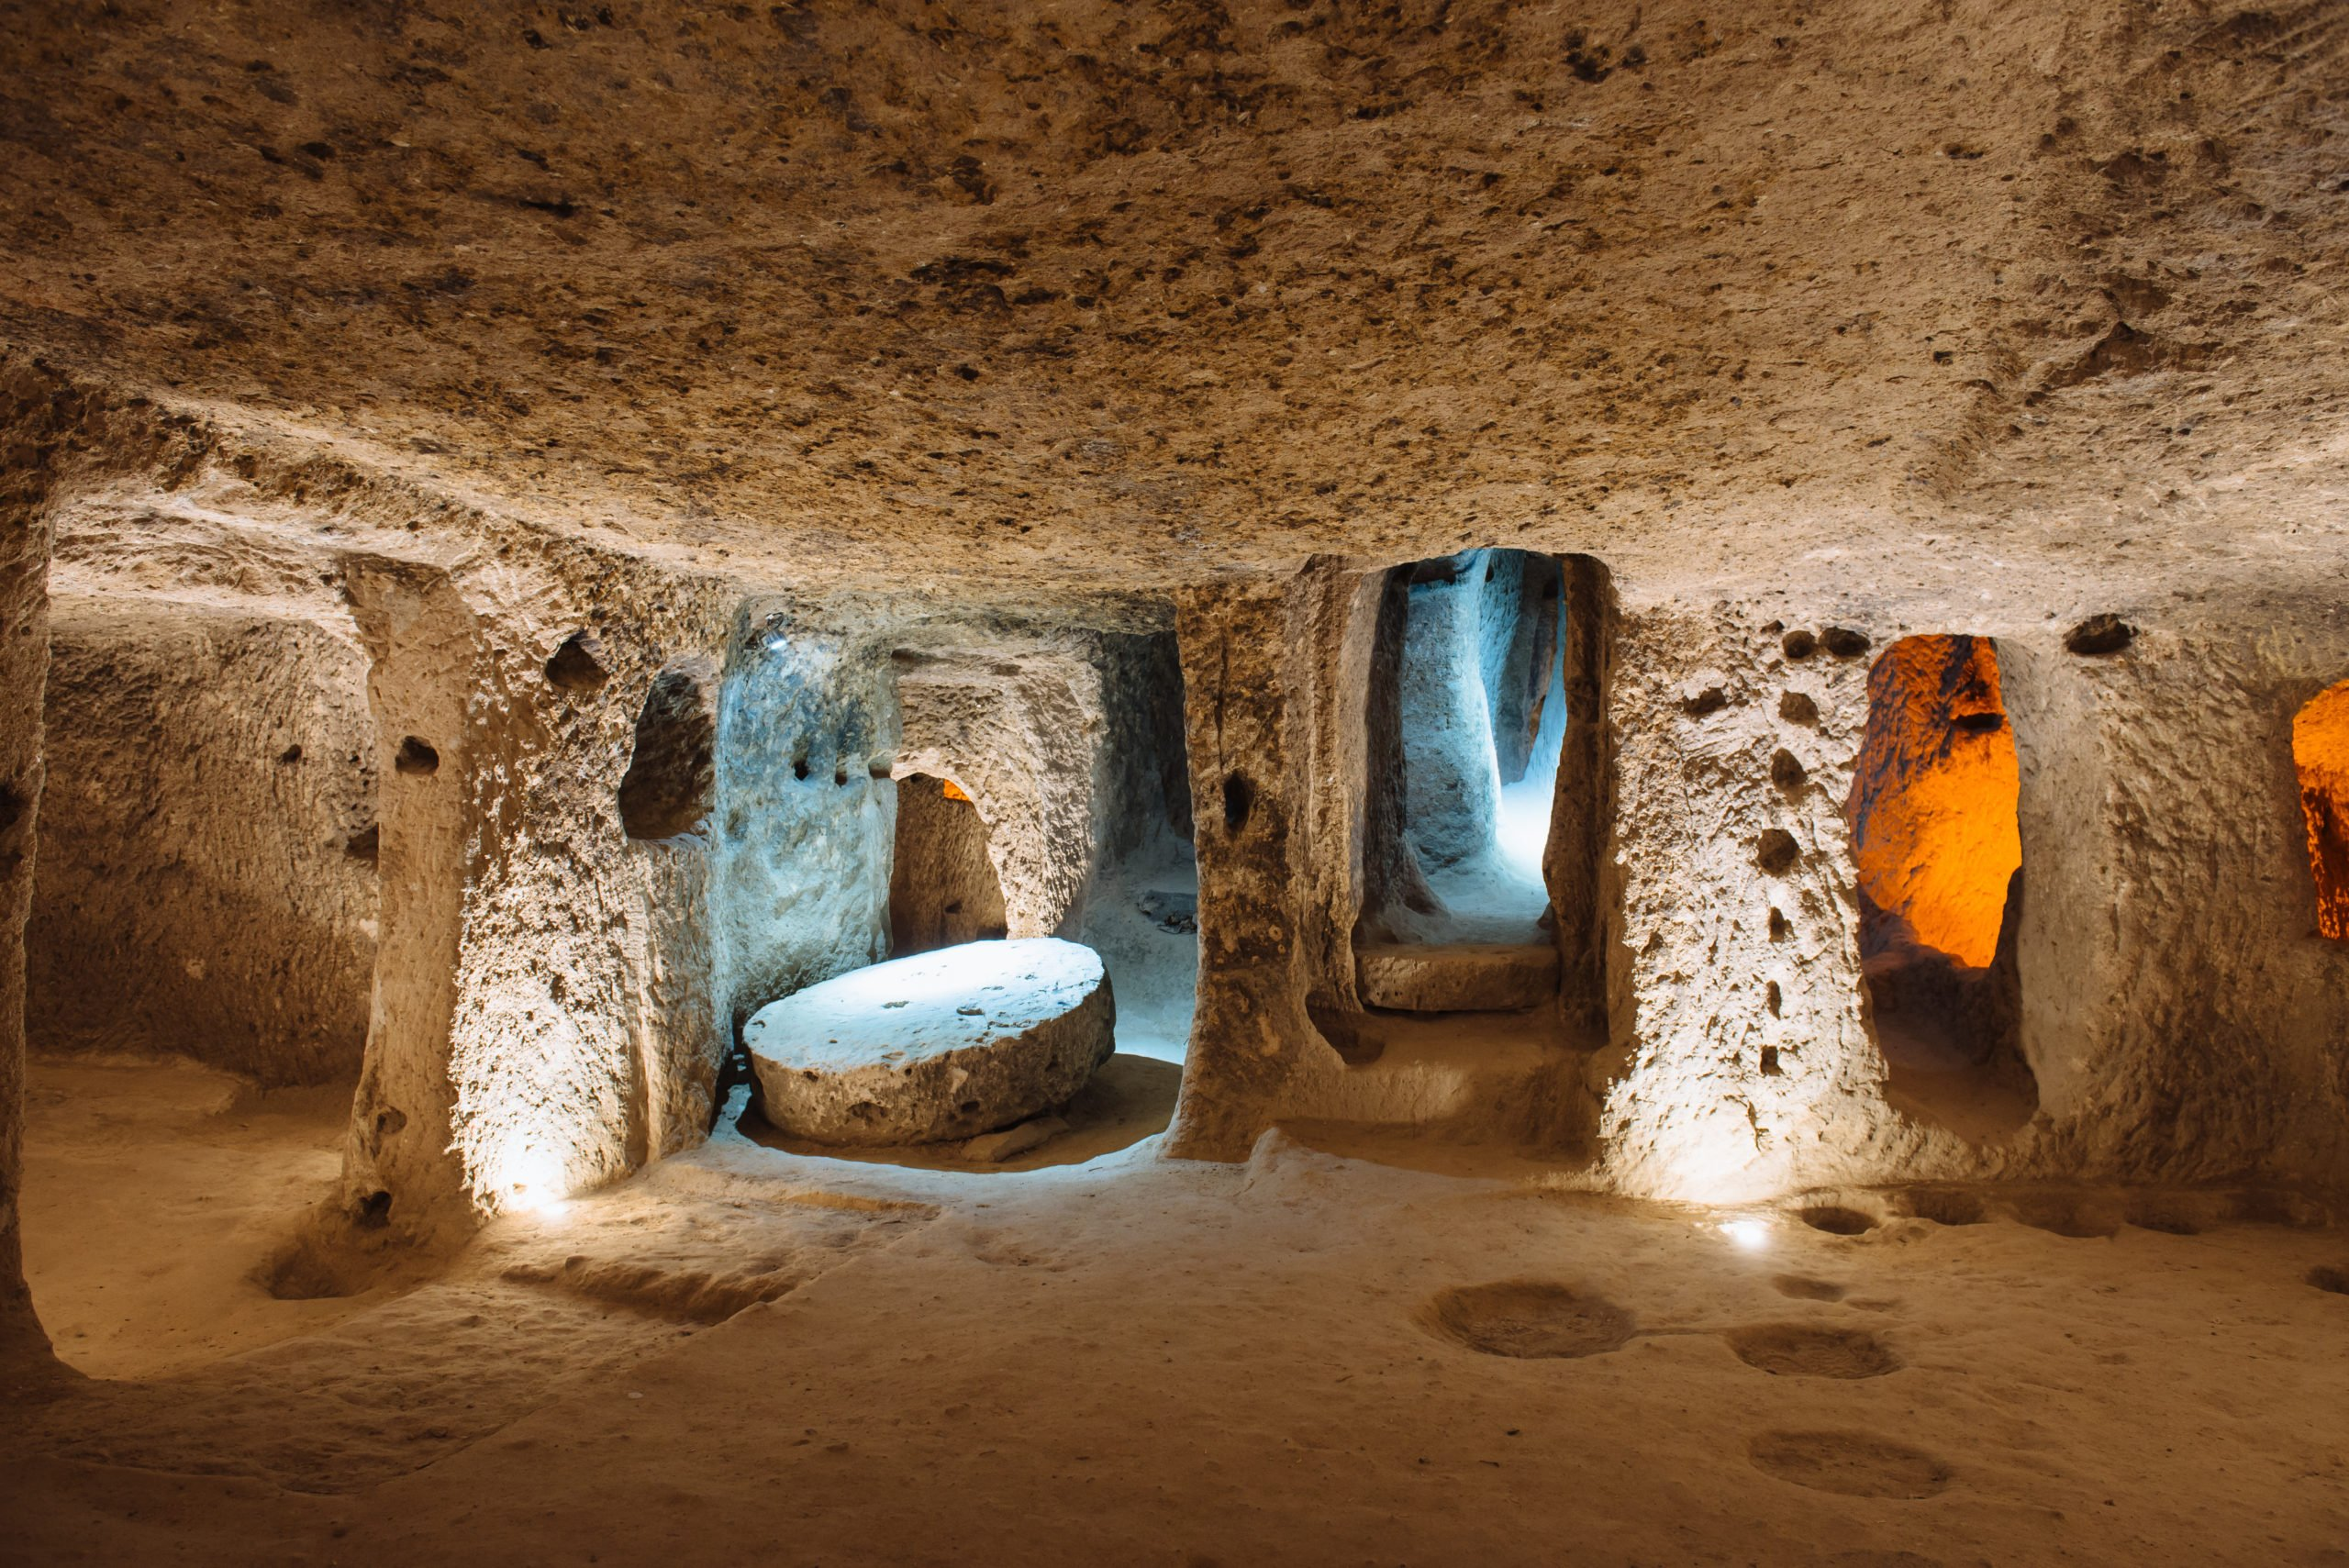 Discover The Famous Underground Cities Of Cappadocia On The Cappadocia 3 Day Tour From Istanbul